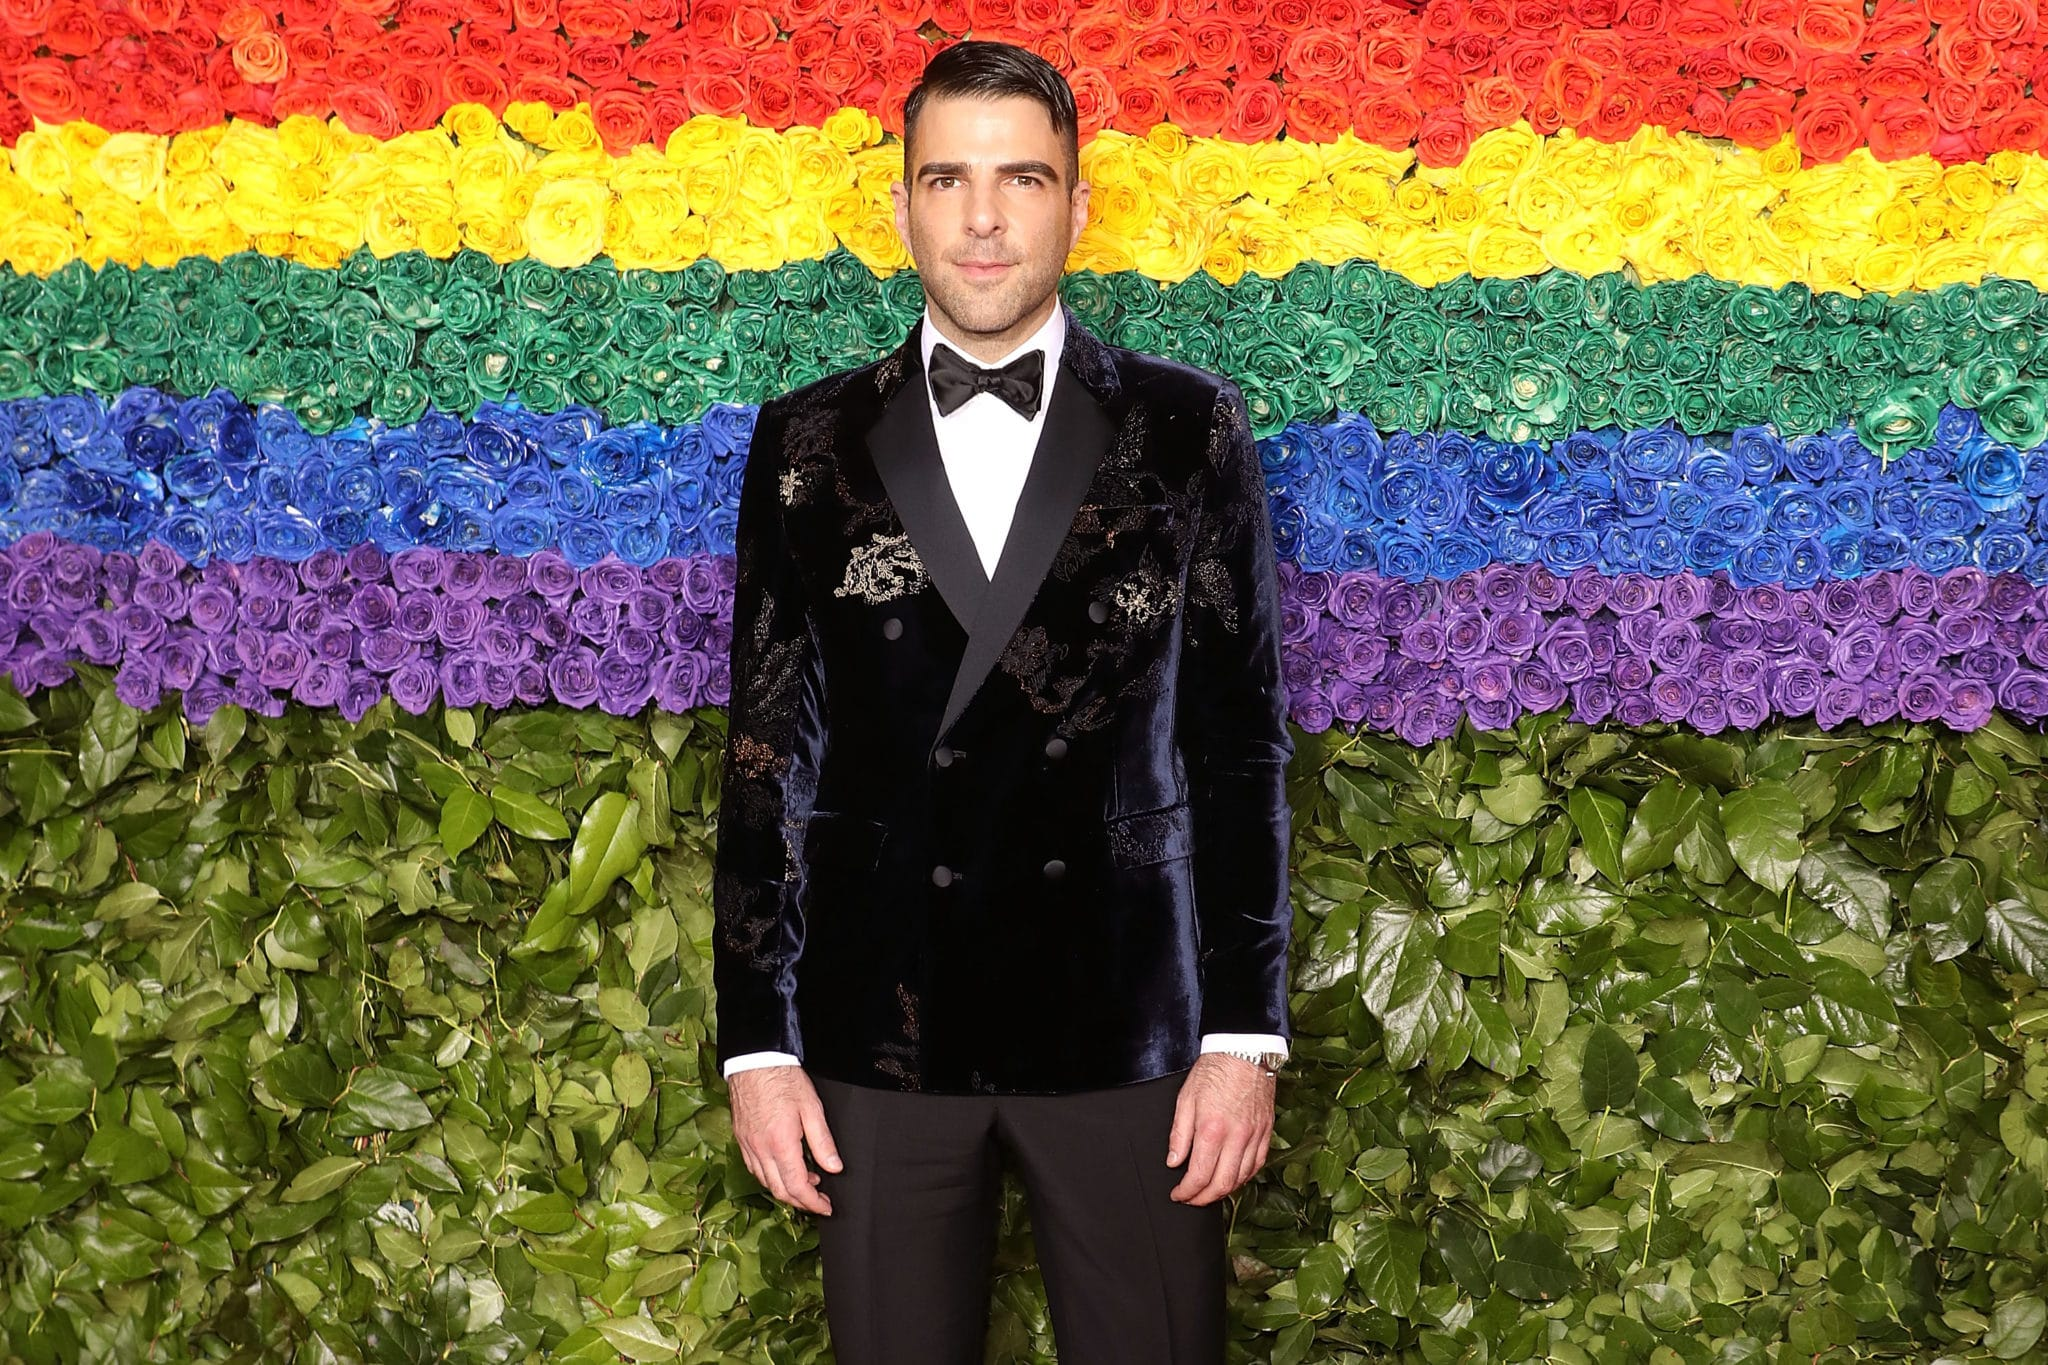 Zachary Quinto to star in new drama that will shed light on shameful